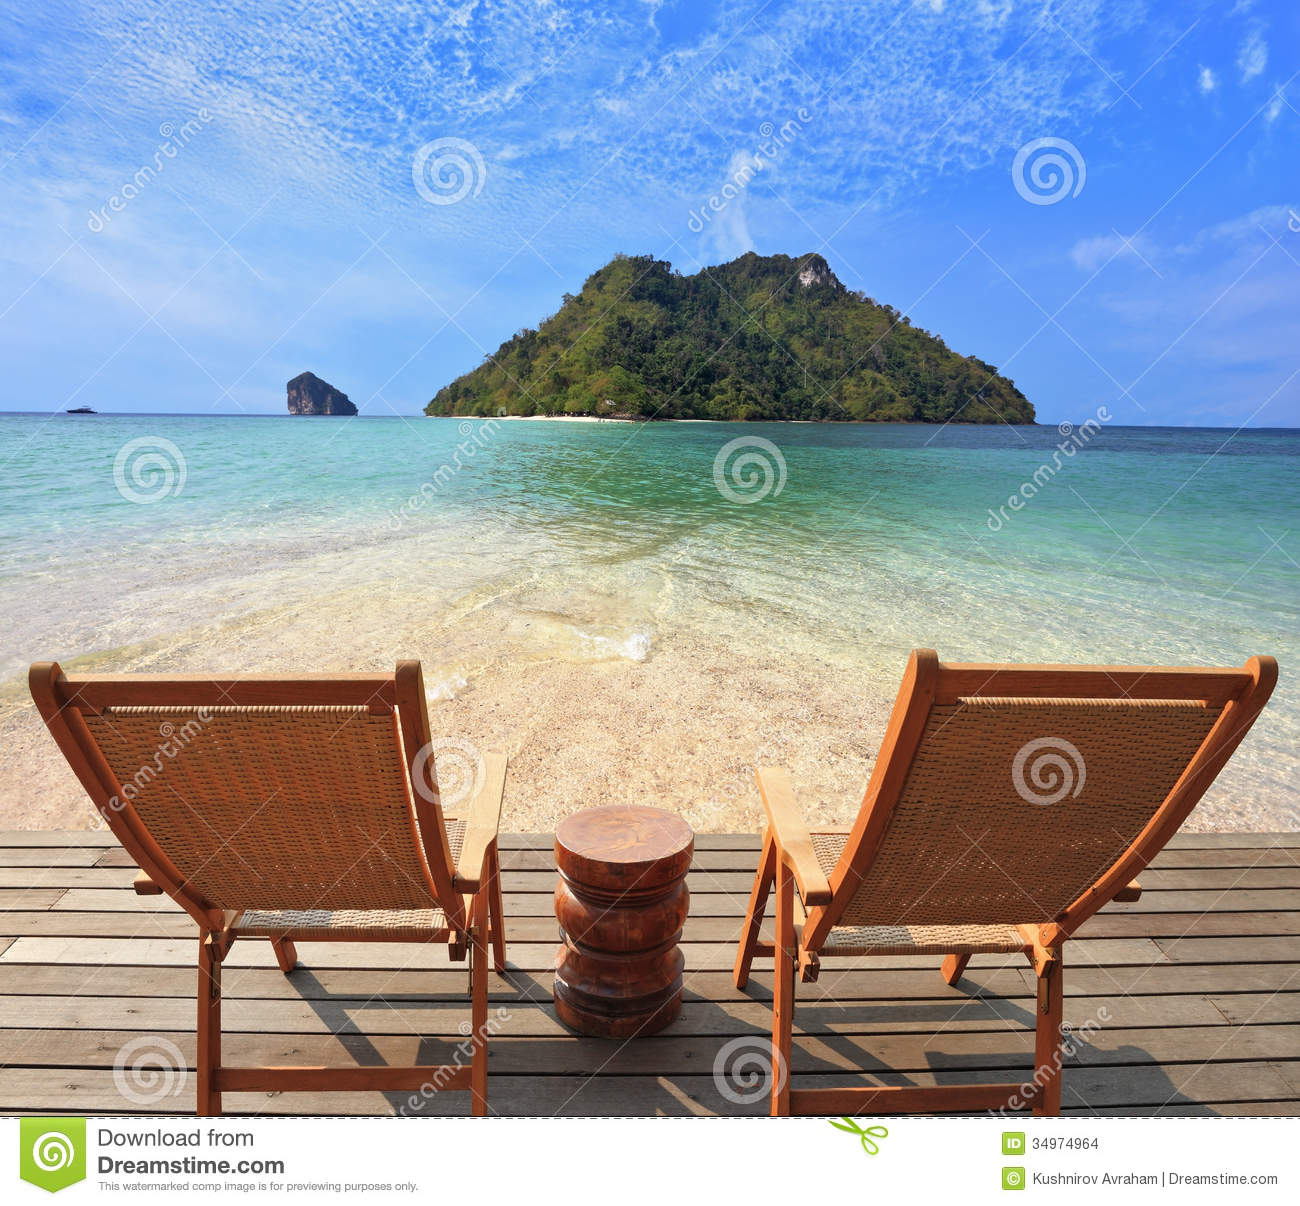 Romantic Corner On The Beach Stock Images - Image: 34974964